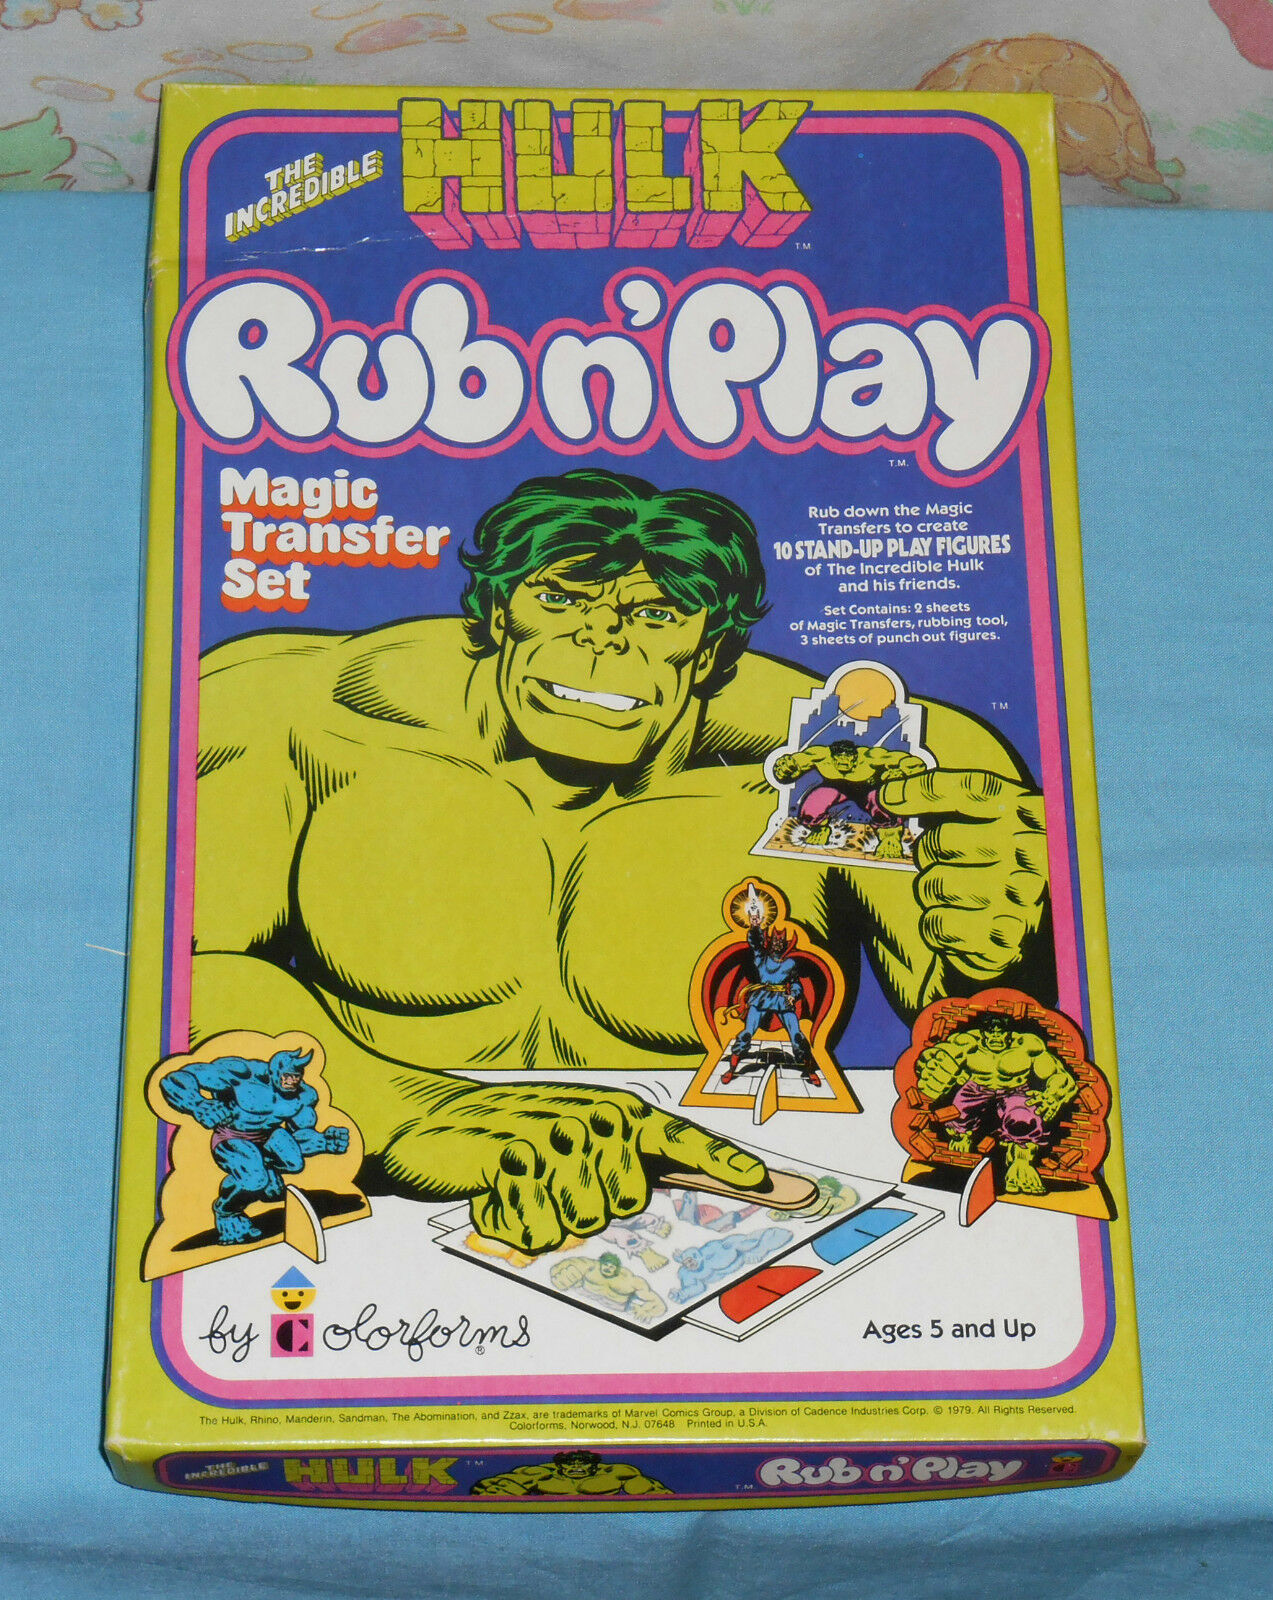 Vintage THE INCREDIBLE HULK RUB N' PLAY magic transfer set unused in box